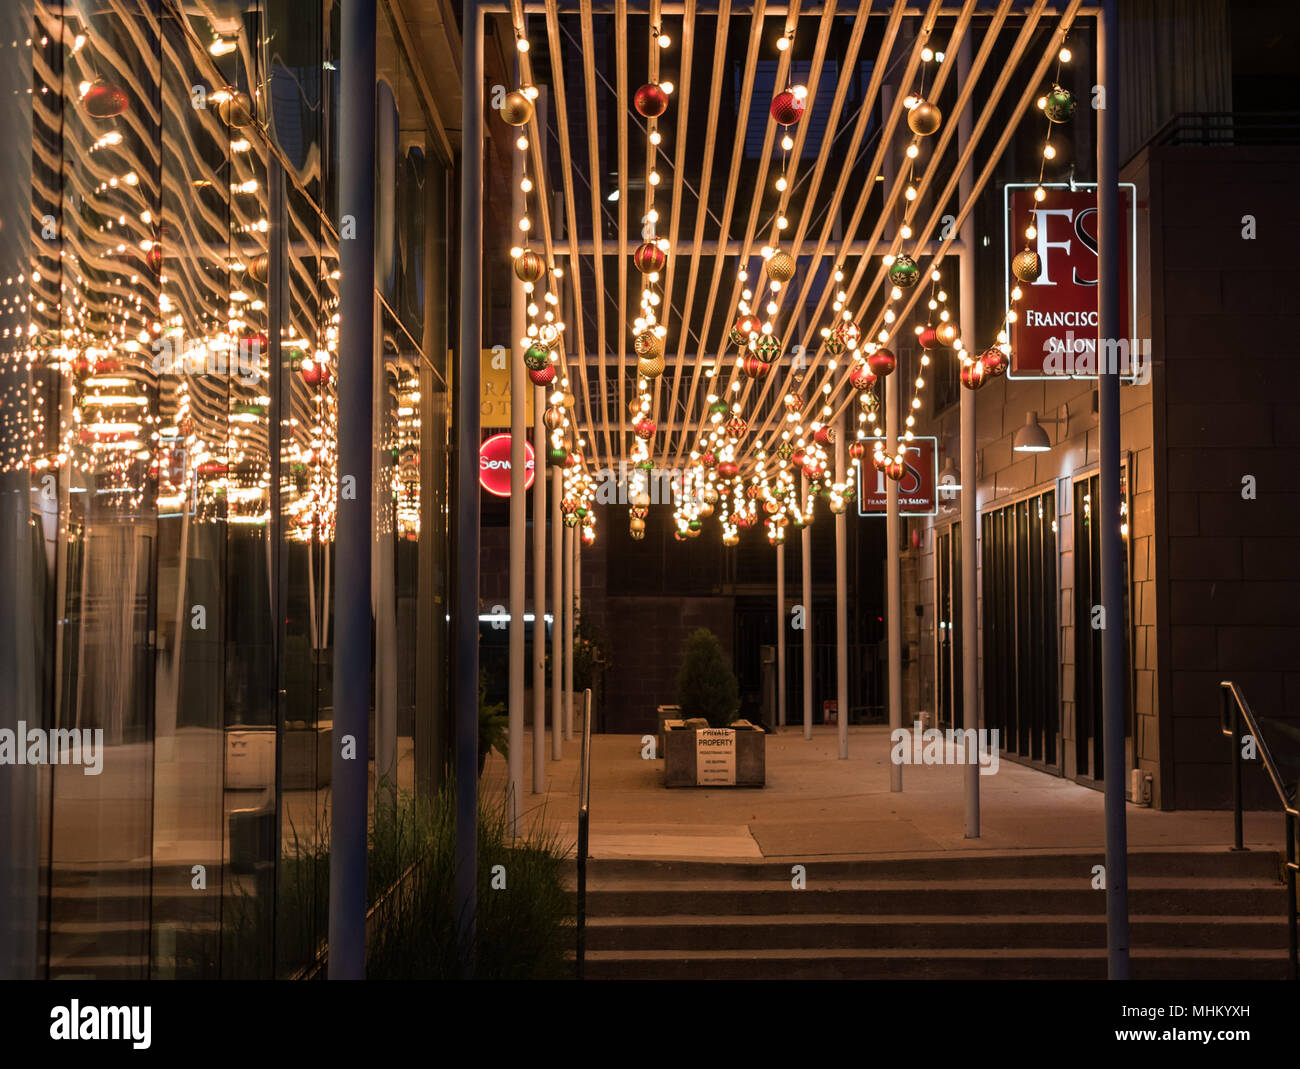 AUSTIN, TEXAS   DECEMBER 31, 2017: Holiday Decorations Light Up The Small  Walk Way Next To Franciscou0027s Salon Located On Congress Ave.